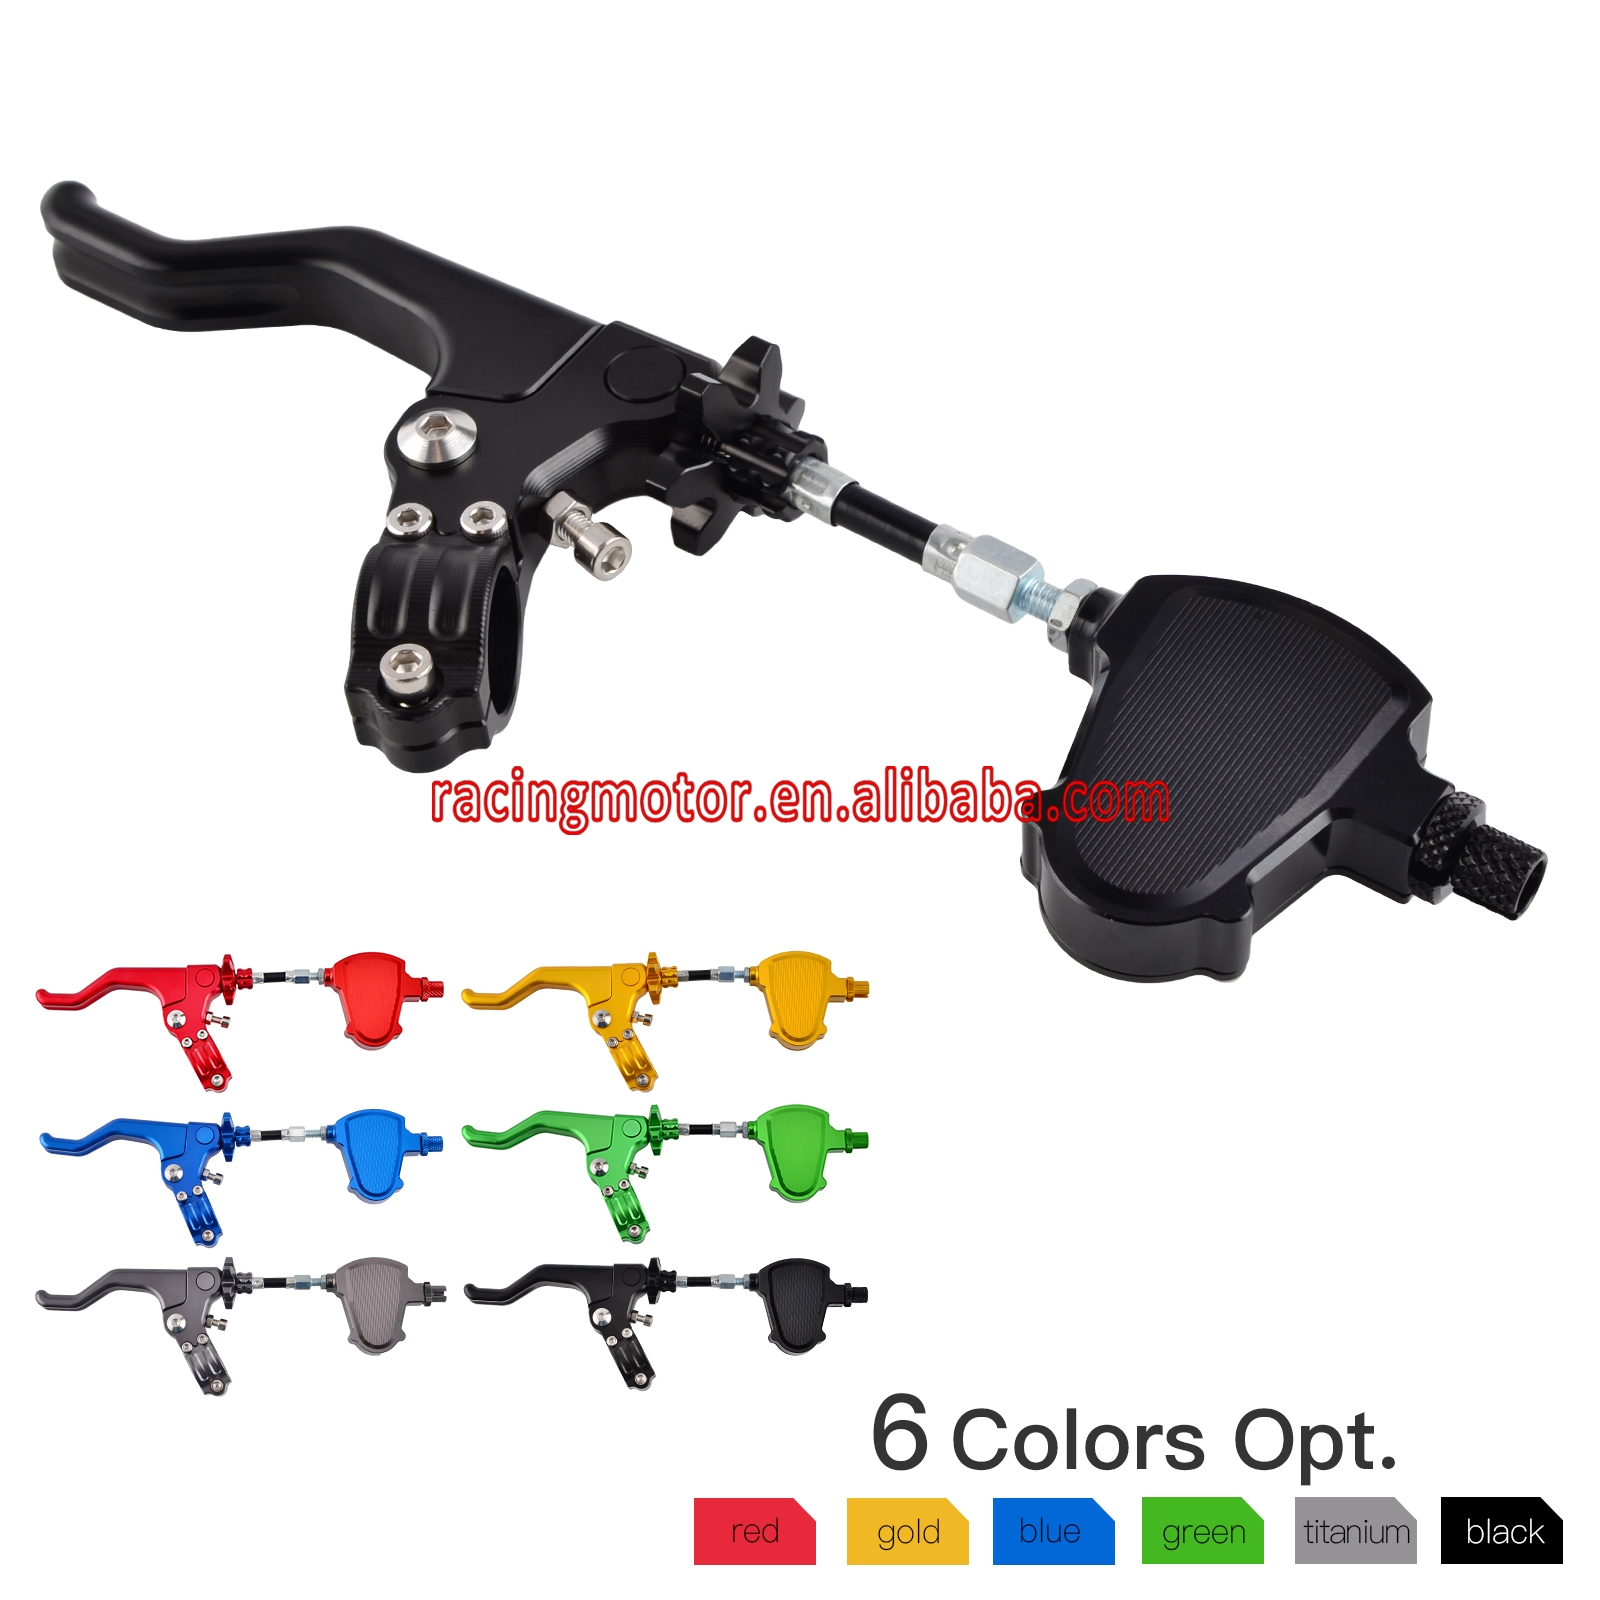 CNC Stunt Clutch Pull Cable Lever Easy System for Honda CBR600RR CBR1000RR CB650F CB500F CB500X CBR500R CBR300R CBR250R cnc stunt clutch pull cable lever easy system for yamaha yz85 yz125 yz250 yz250f yz450f wr250f wr250r wr250x wr450f